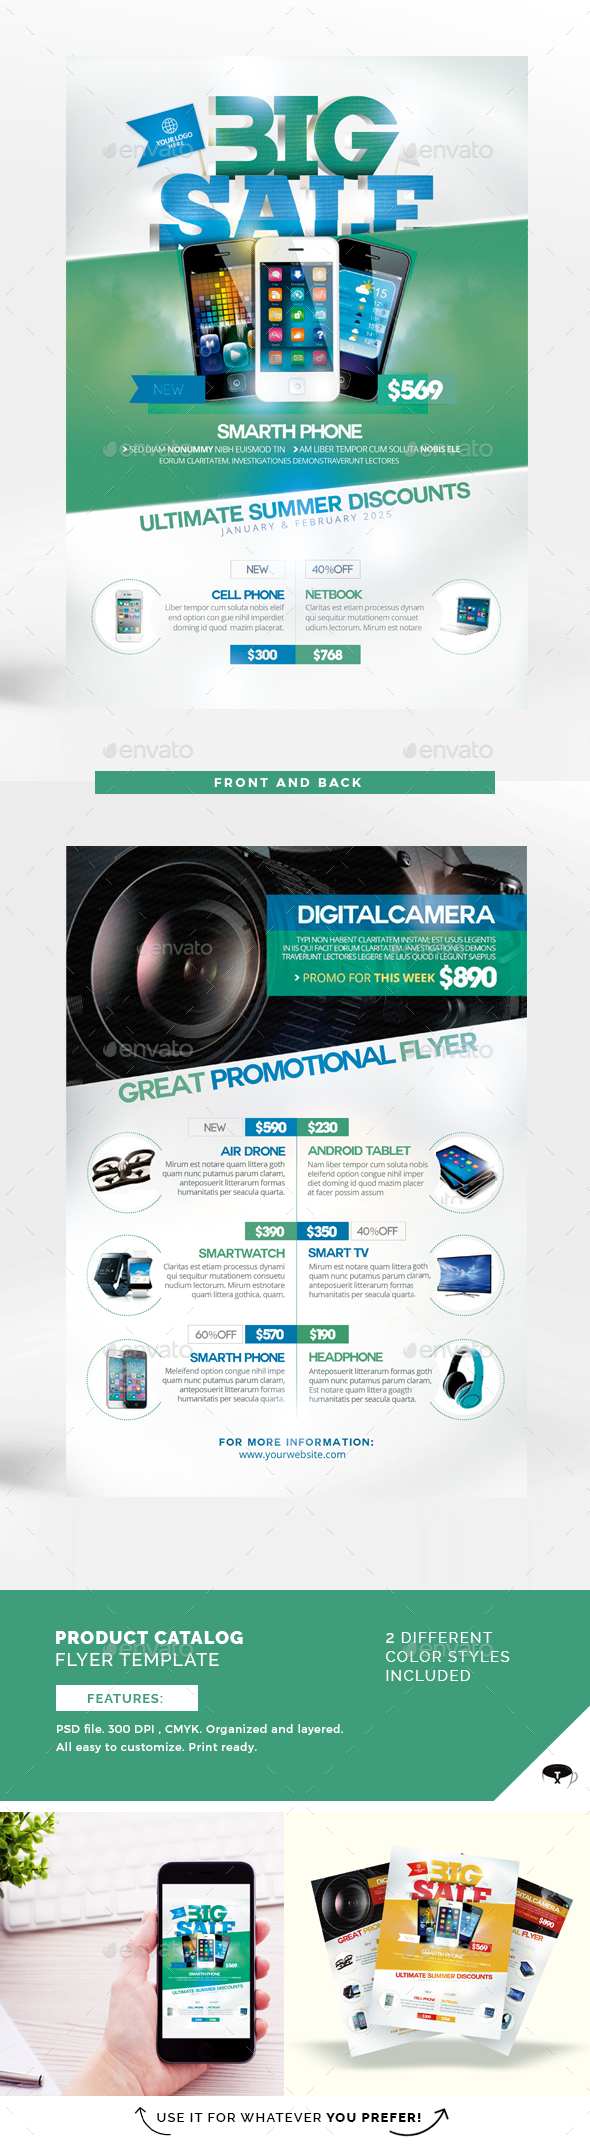 Product Catalog Flyer Template - Flyers Print Templates